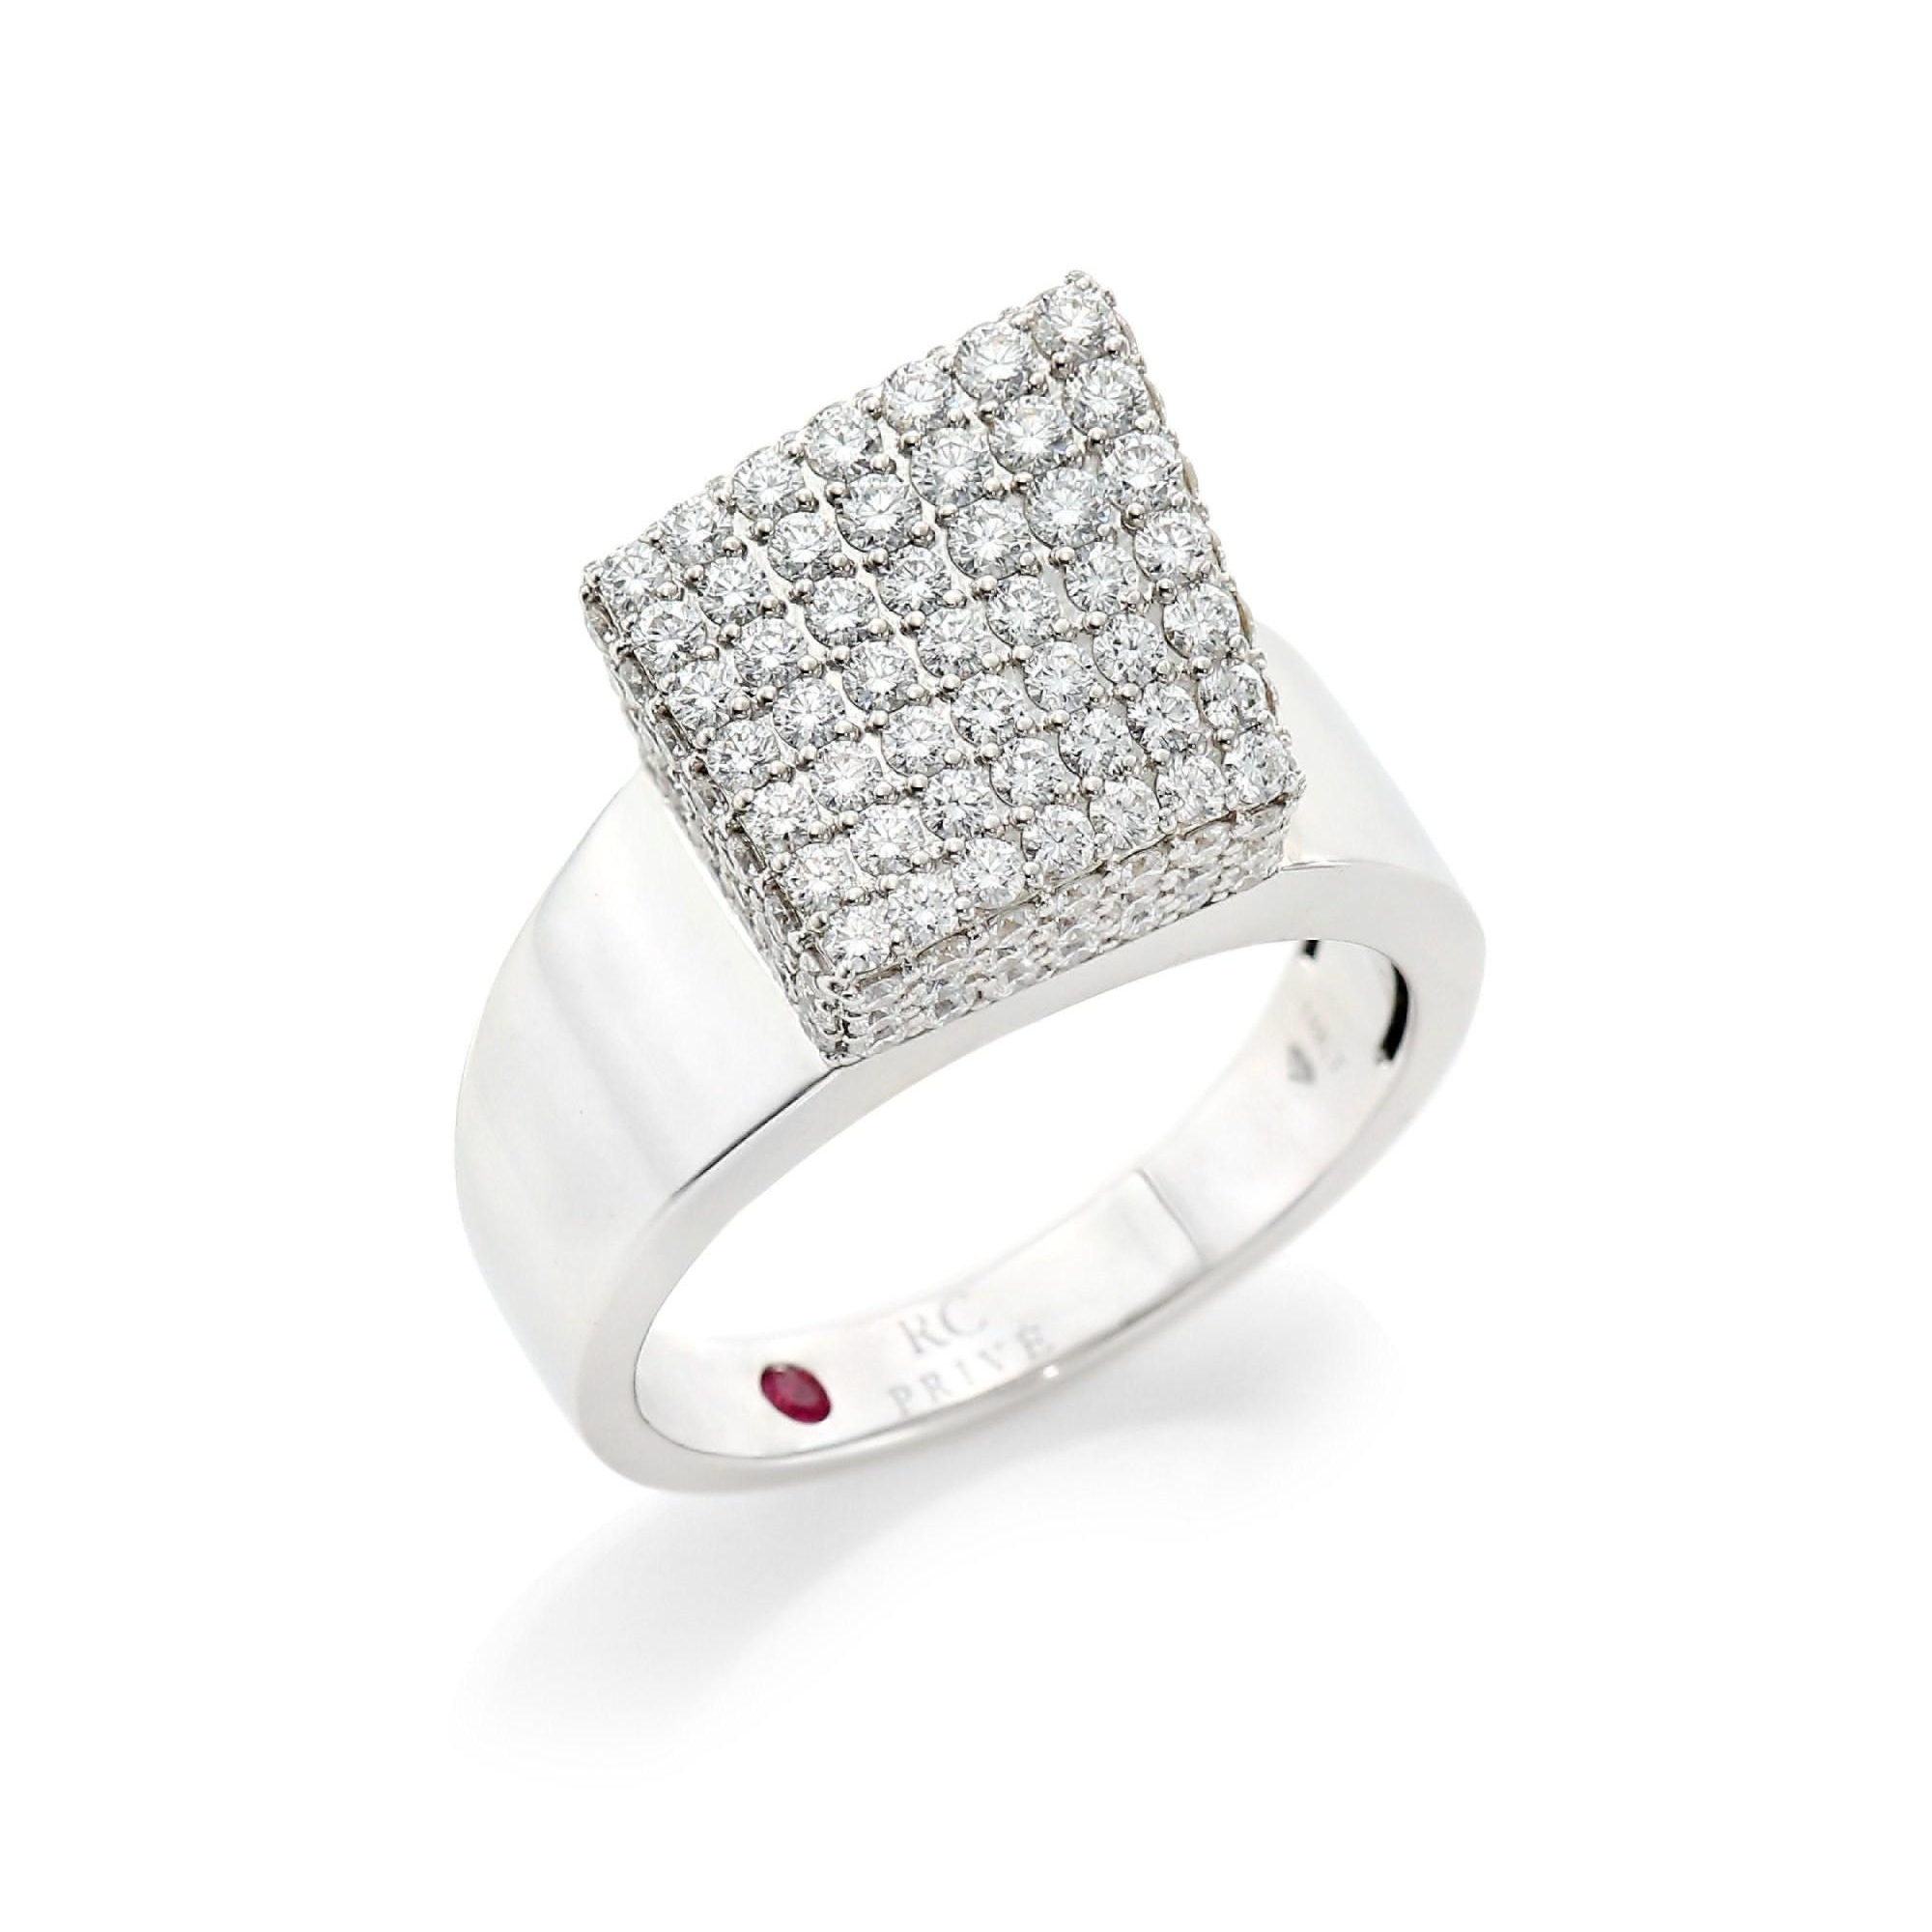 Roberto Coin 18K White Gold 1.65cts  Diamonds Gold Ring with Stones 8882396AW65X